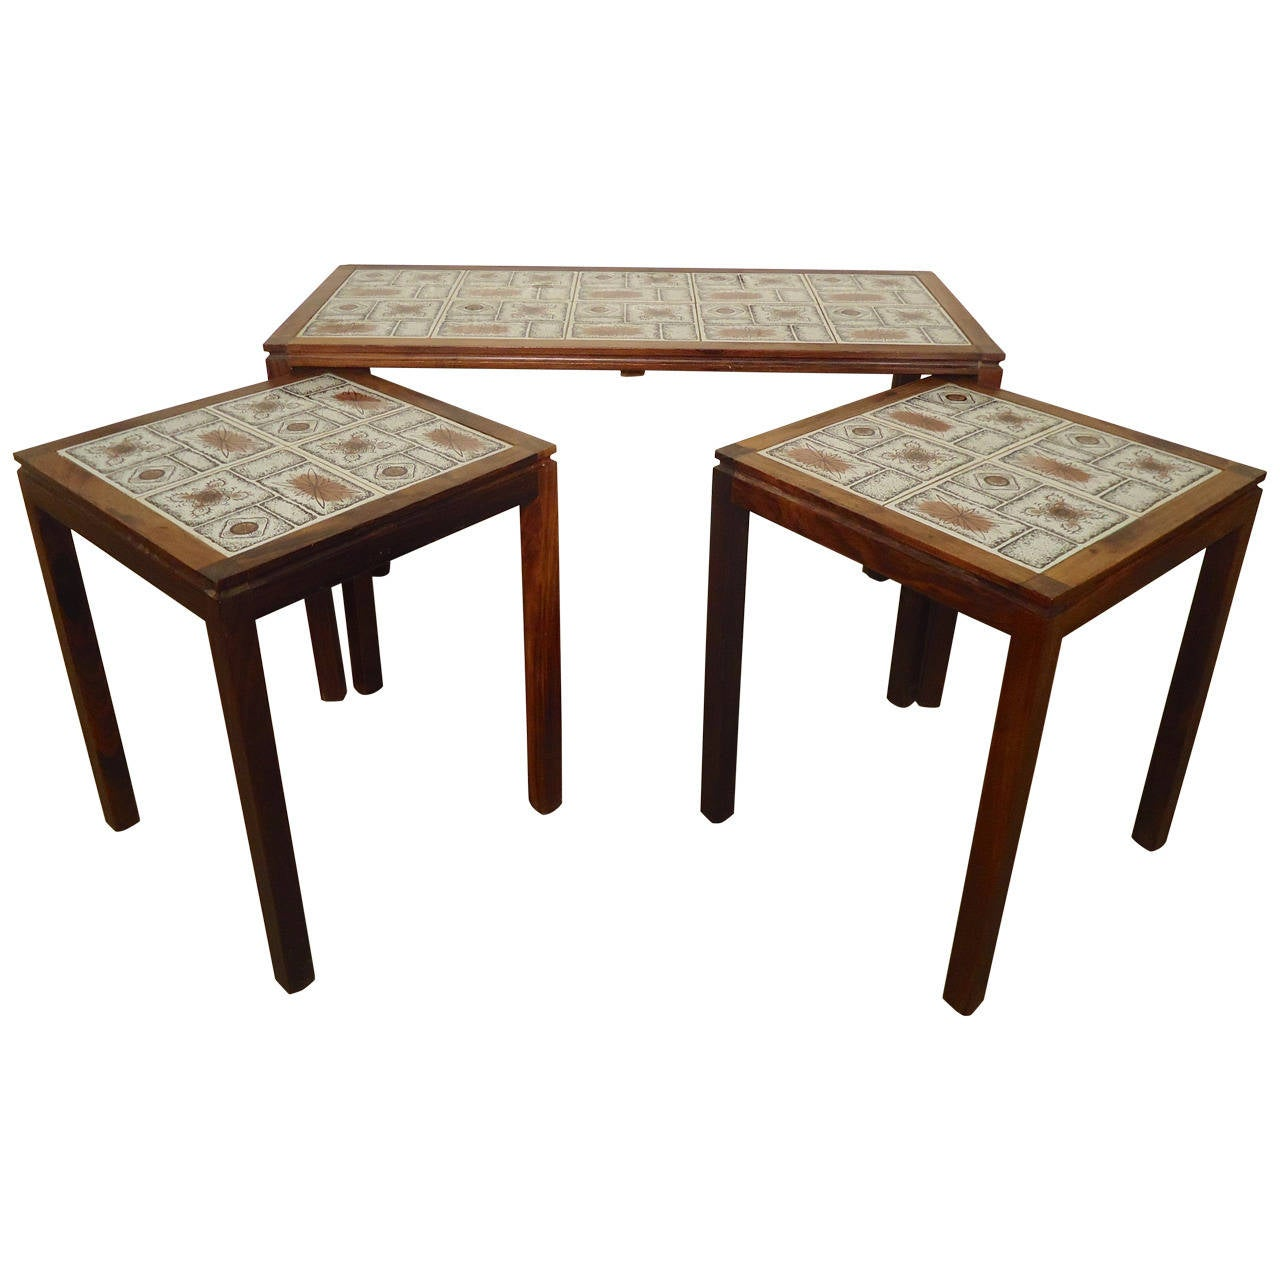 Tile Coffee Table Set: Midcentury Tile-Top Table Set At 1stdibs